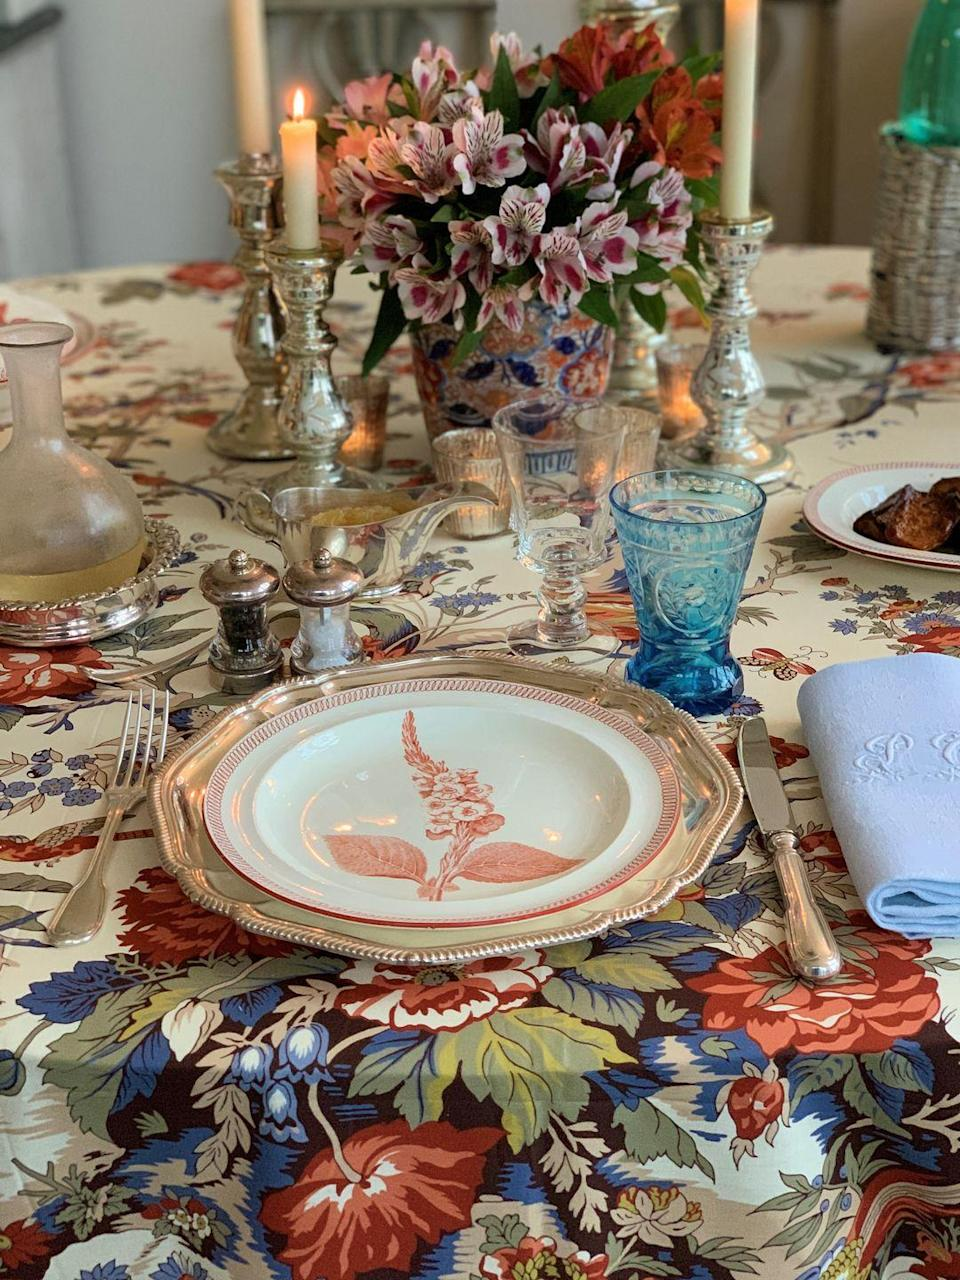 """<p>Paolo Moschino's fall tablescape includes a colorful antique statement vessel that perfectly compliments the patterned tablecloth, available soon online at <a href=""""https://nicholashaslam.com/"""" rel=""""nofollow noopener"""" target=""""_blank"""" data-ylk=""""slk:Paolo Moschino for Nicholas Haslam."""" class=""""link rapid-noclick-resp"""">Paolo Moschino for Nicholas Haslam.</a> </p>"""